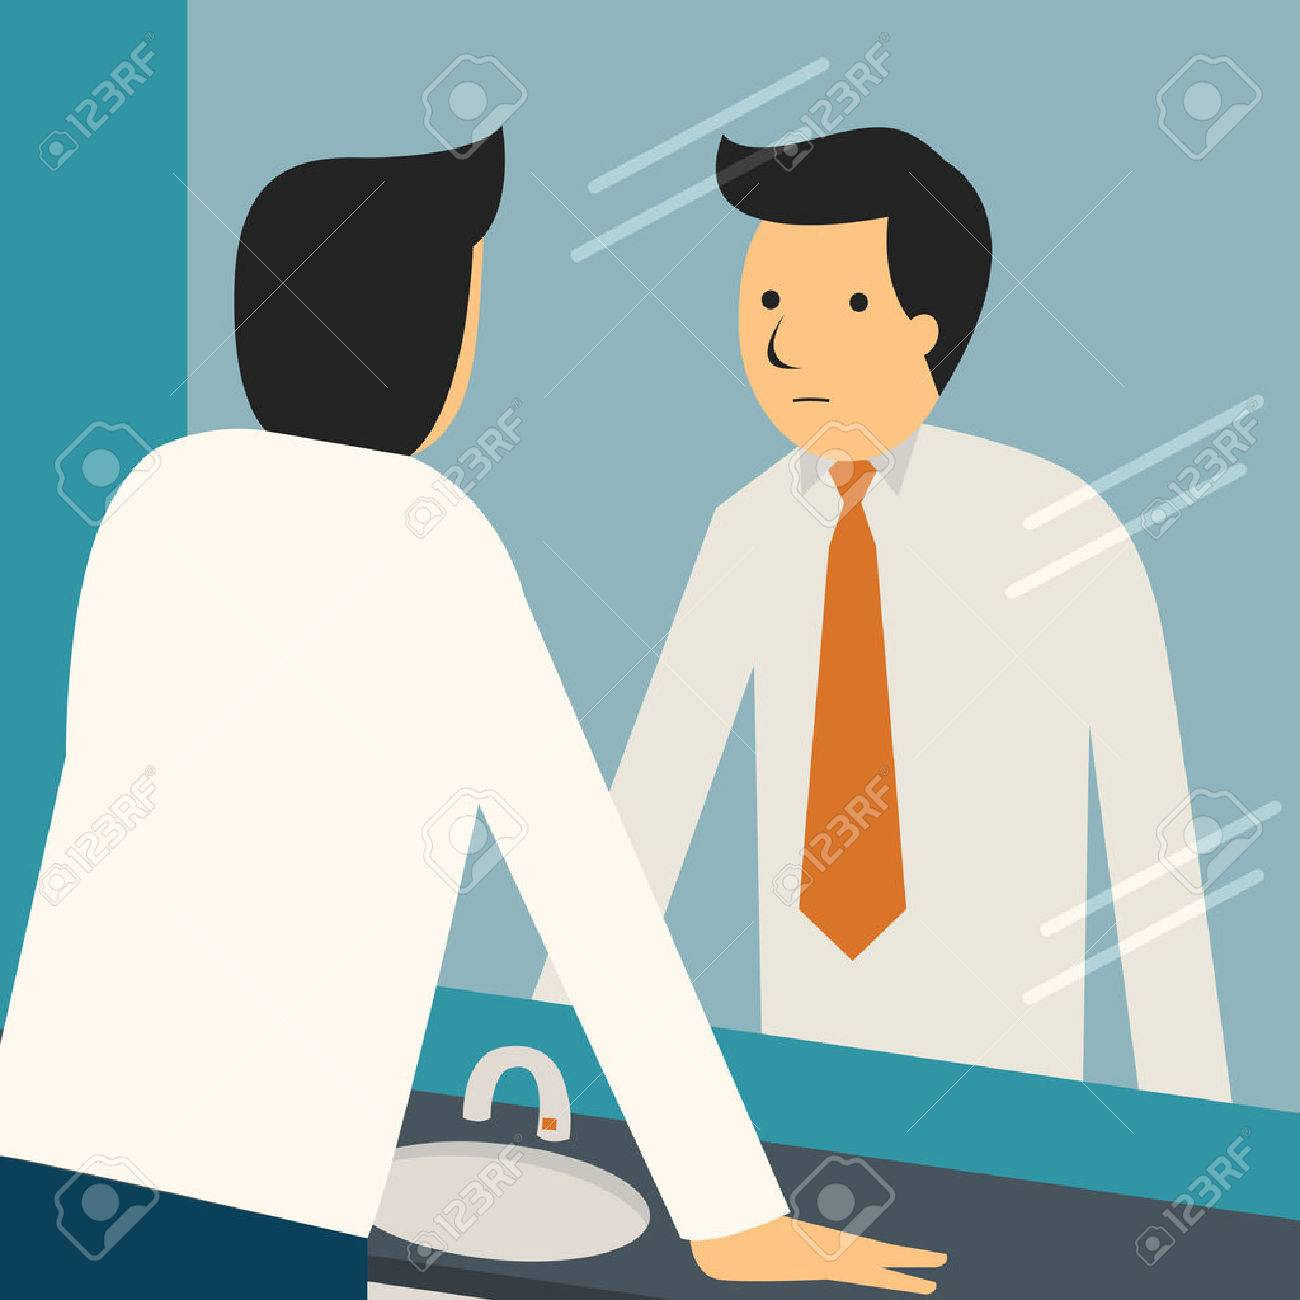 Businessman looking at himself in mirror to encourage and find himself confident. - 36130694